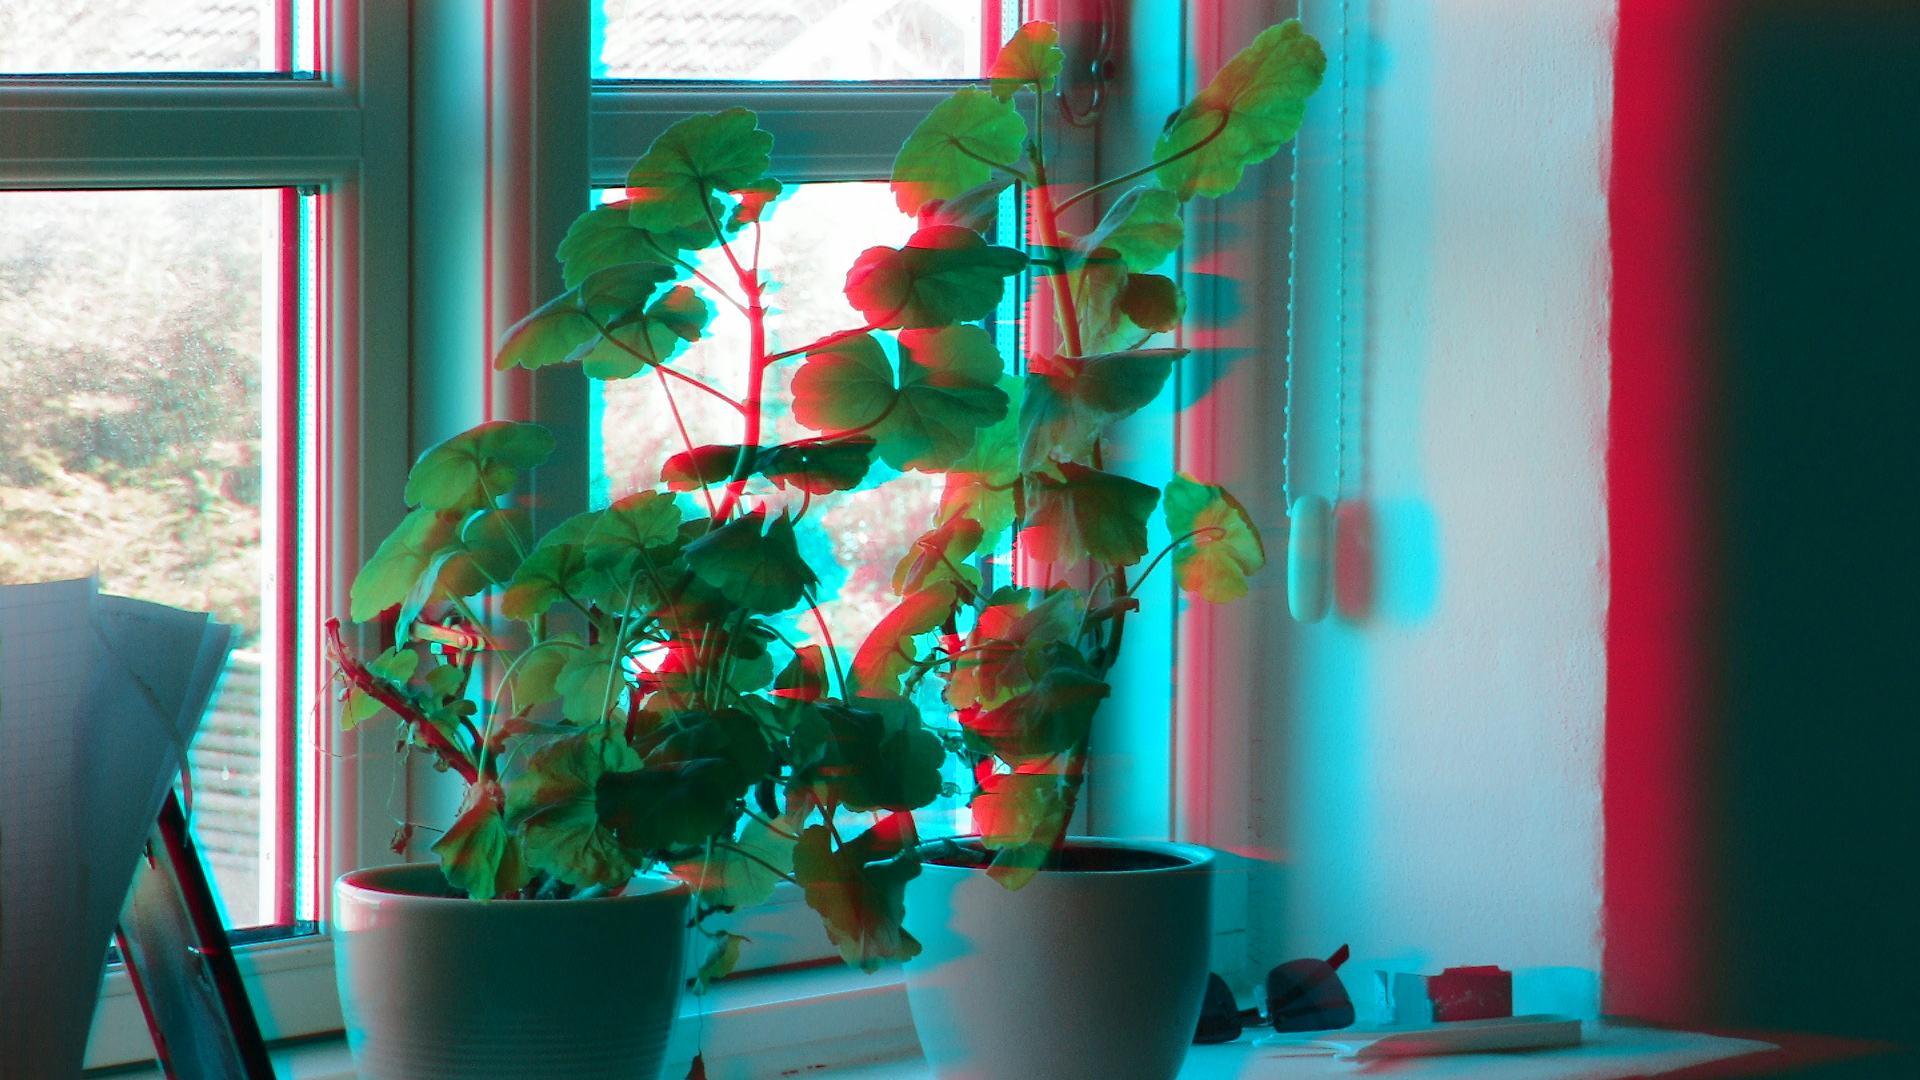 3d Anaglyph Wallpaper Desktop Make Your 3d Glasses And See These Awesome 3d Images